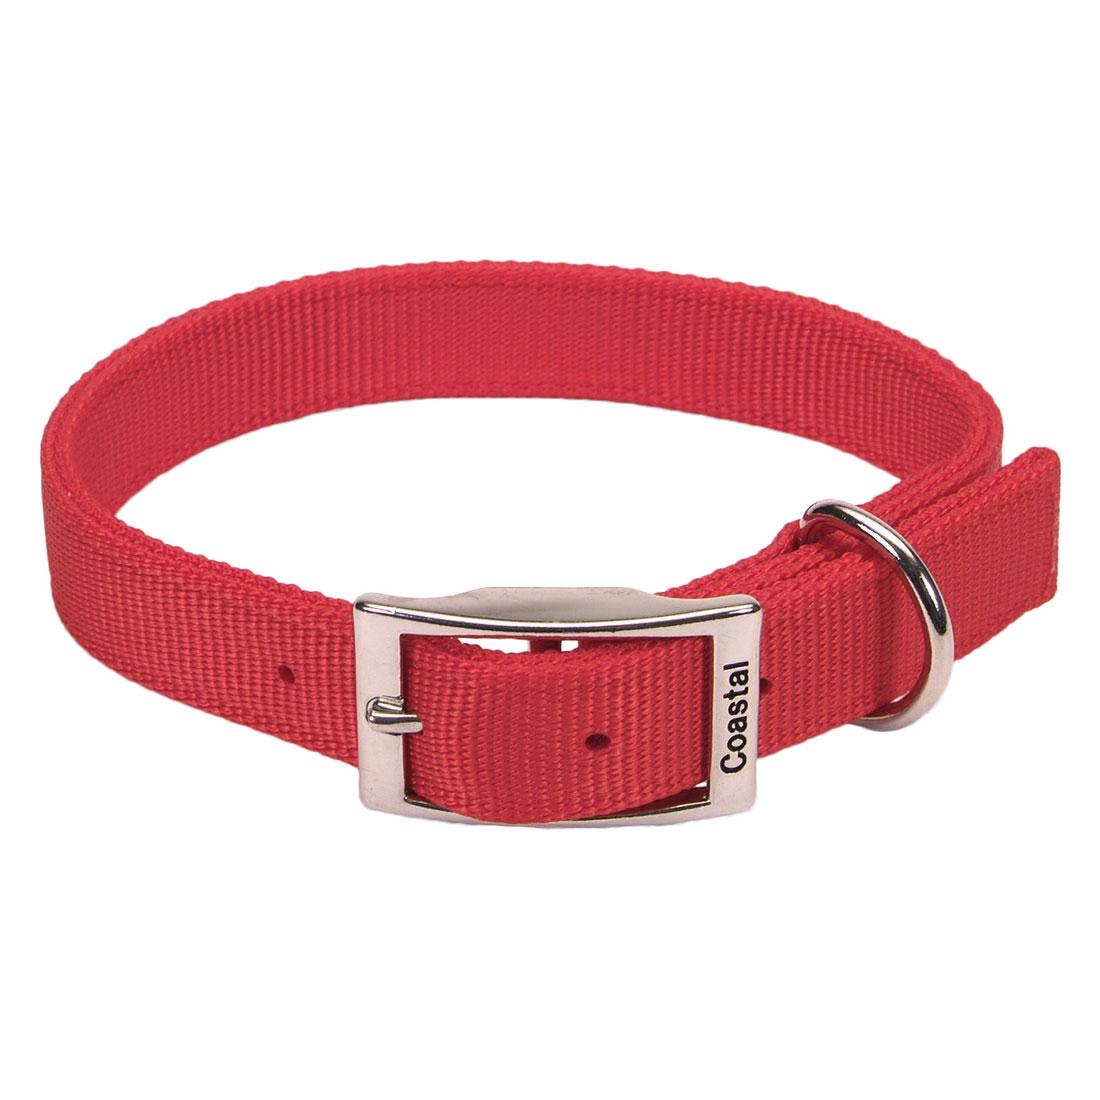 Coastal Double-Ply Nylon Dog Collar, Red Image